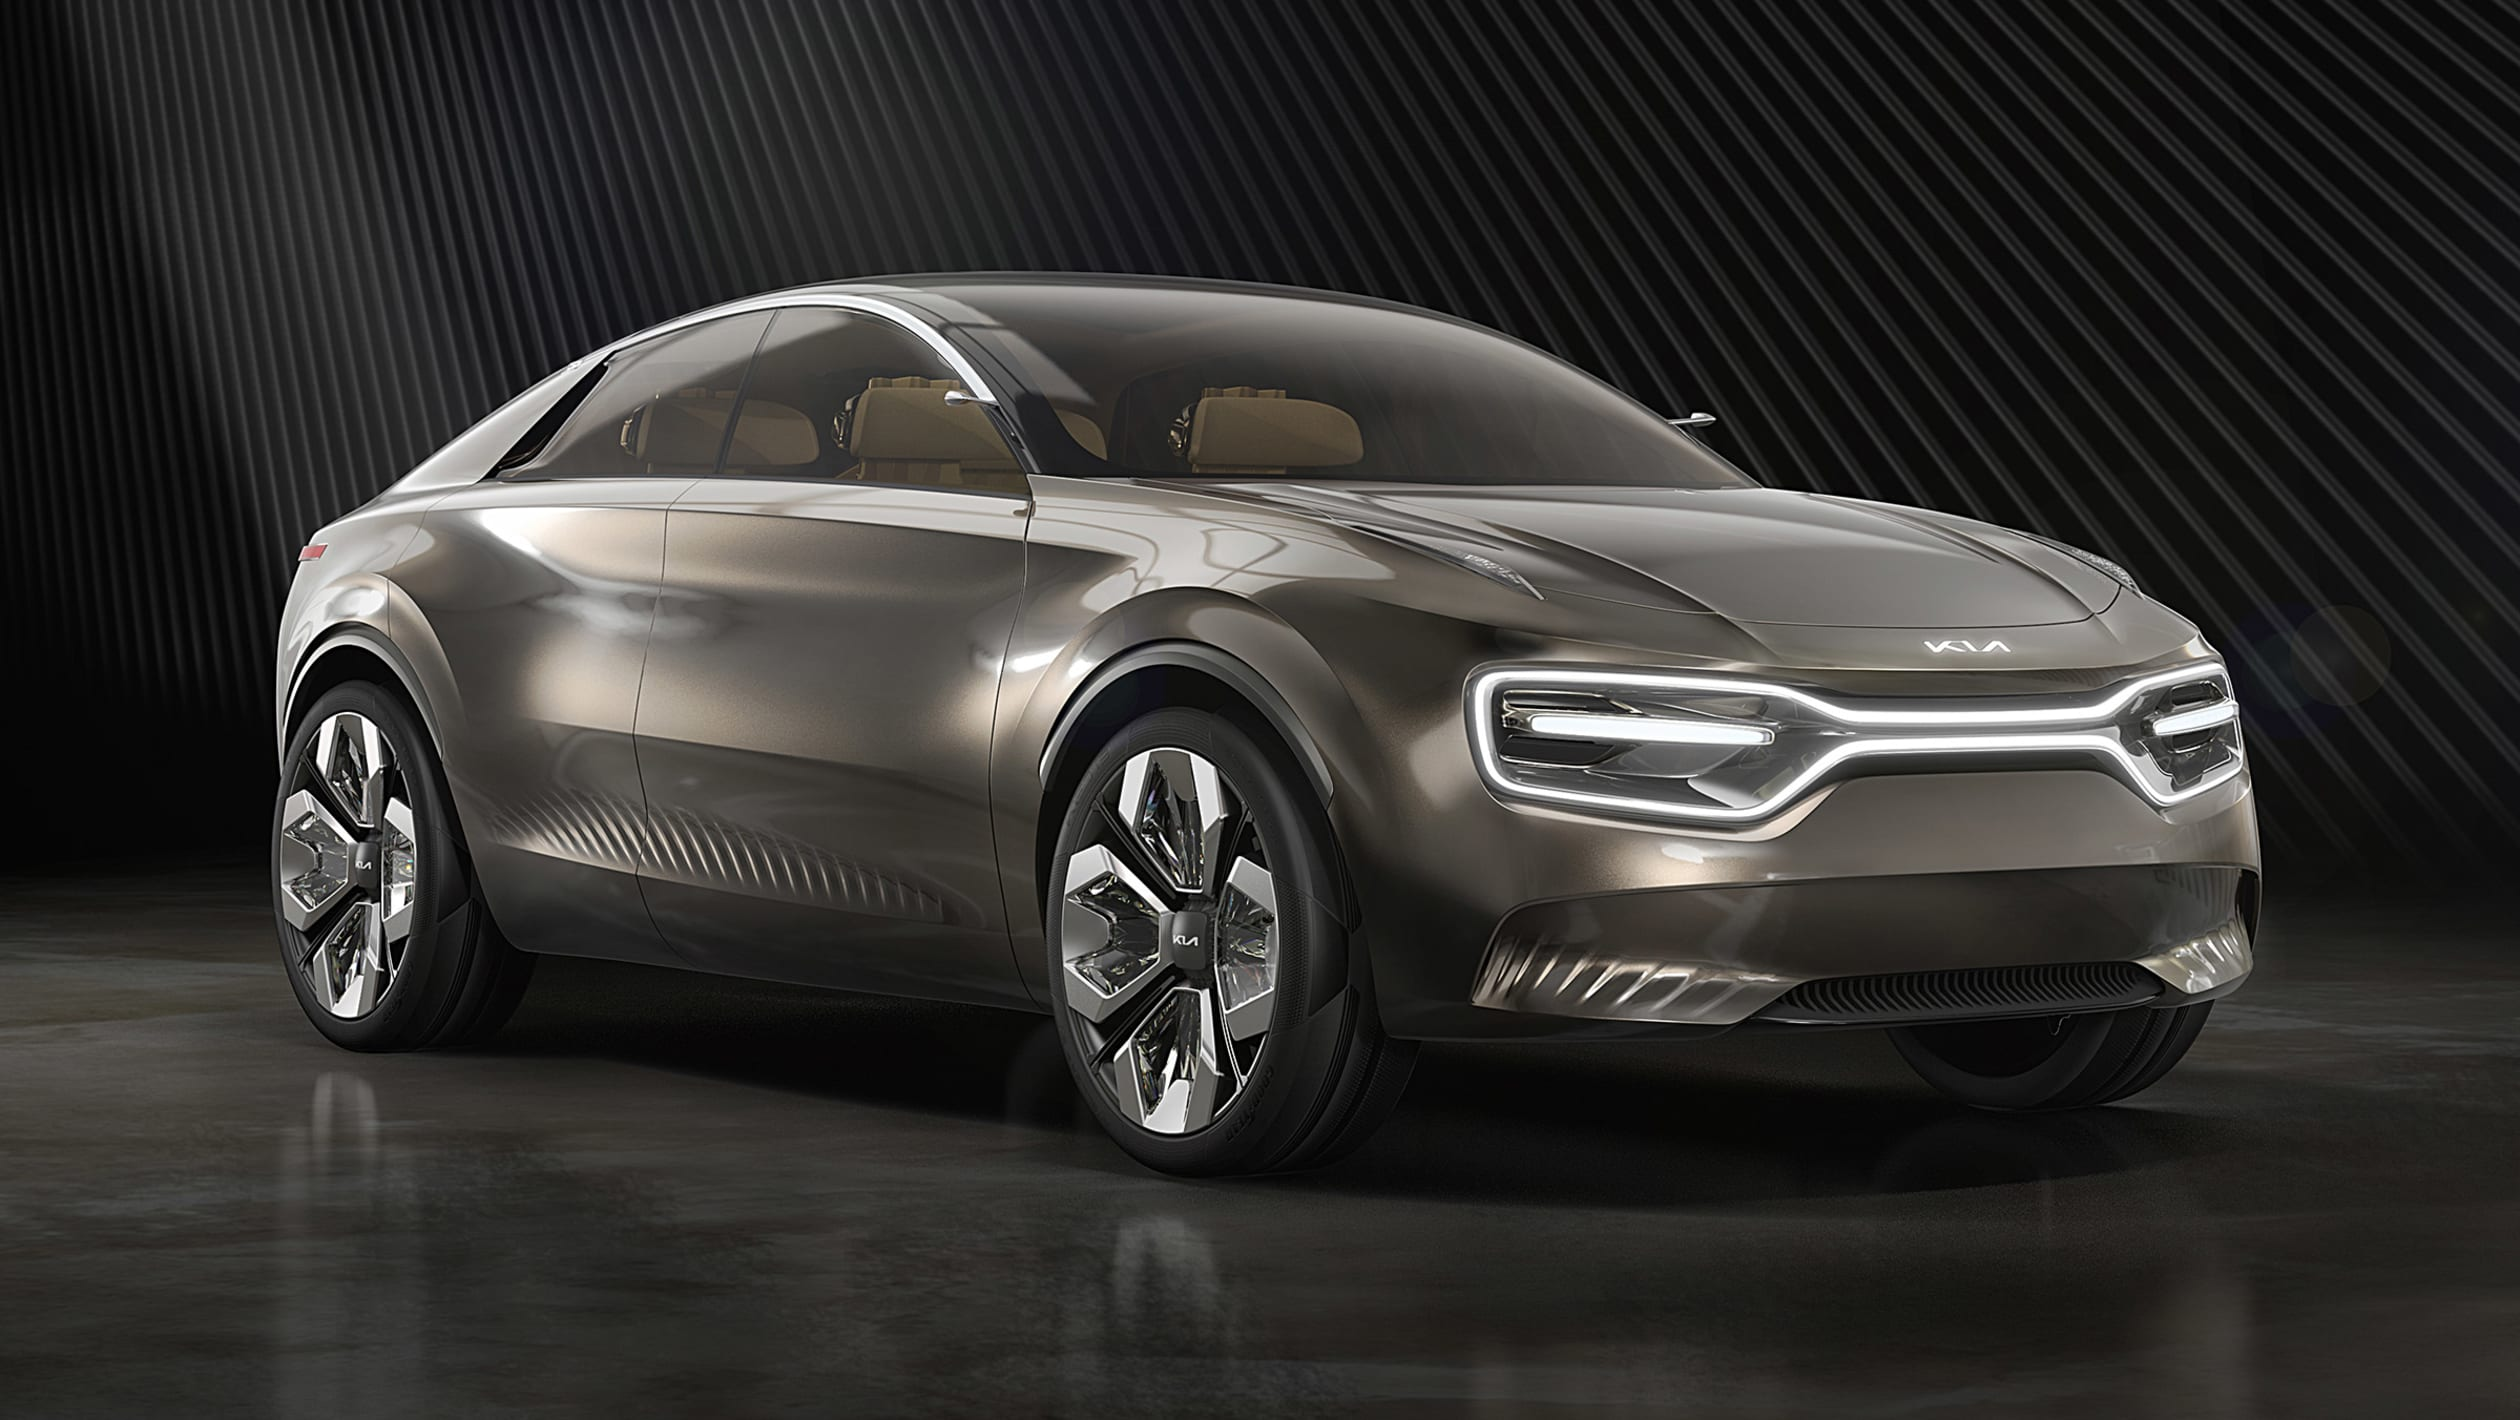 2021 Kia Imagine concept 4